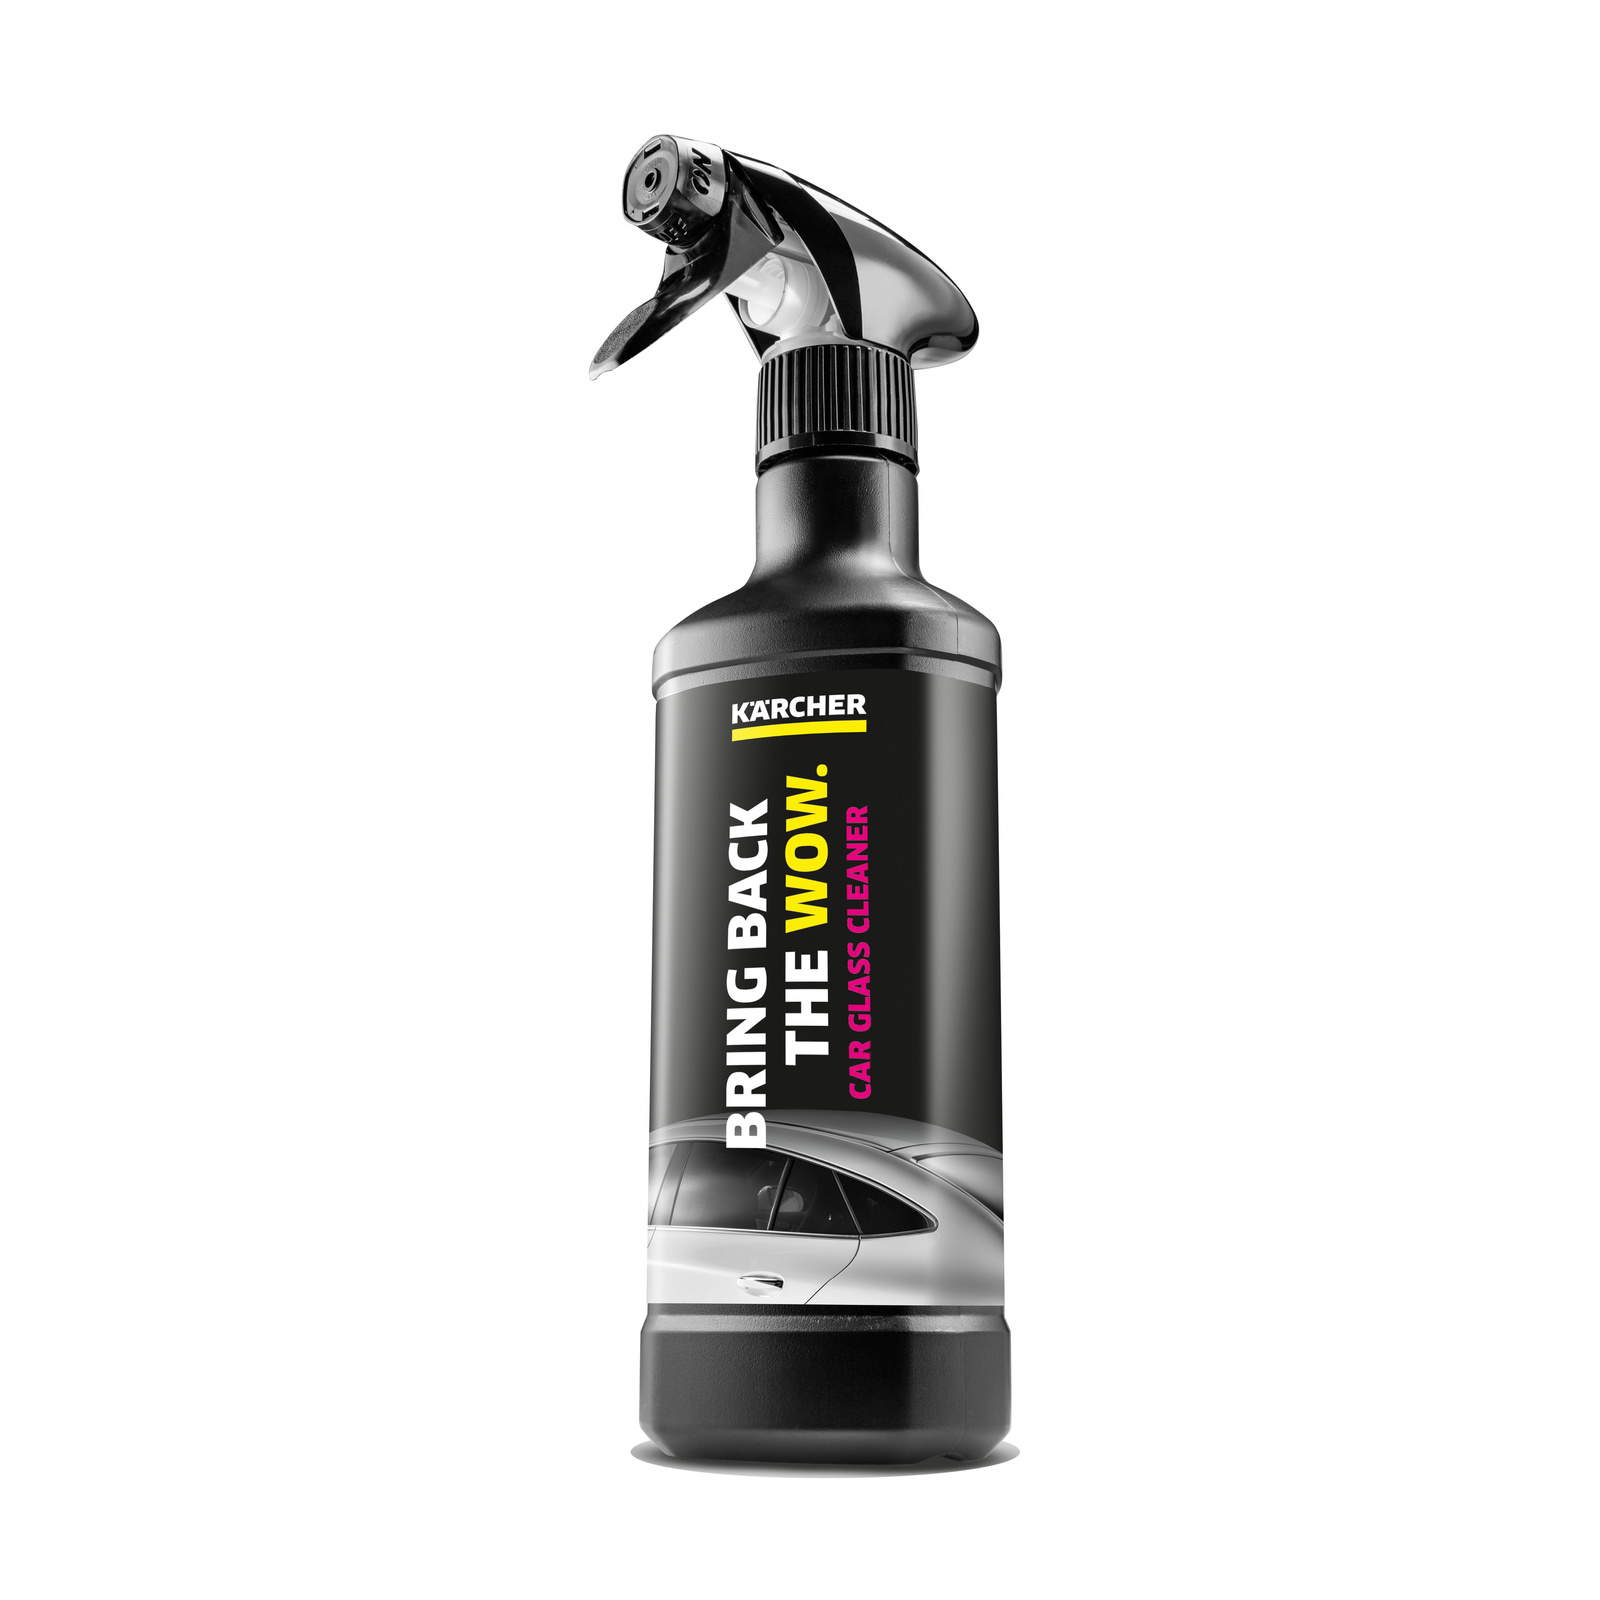 New Products For Vehicle Cleaning And Maintenance From Karcher Karcher International